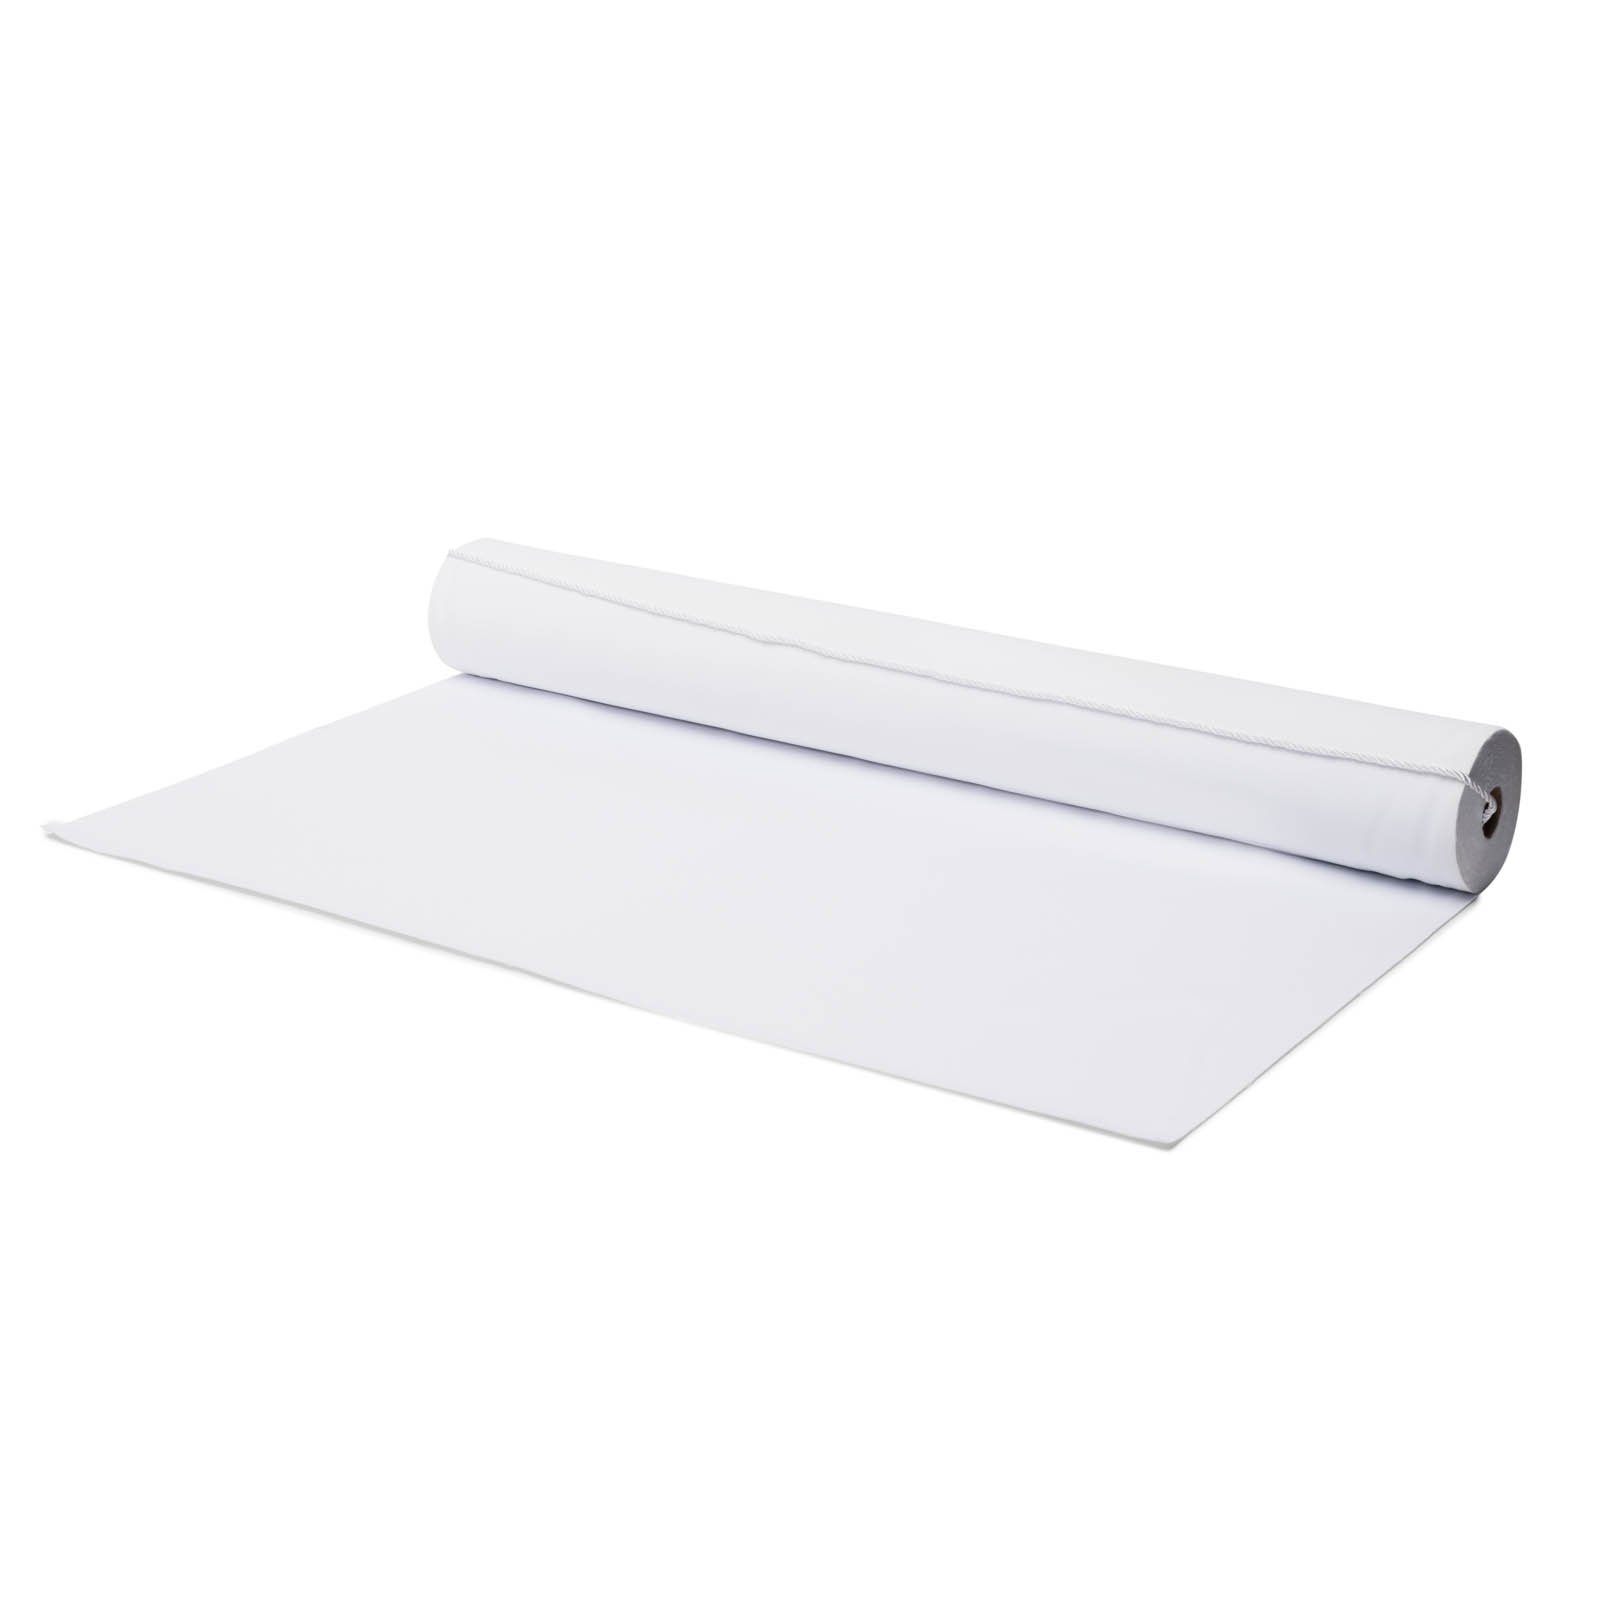 Non Slip Wedding Aisle Runner, Polyester Fabric Floor Runners for Weddings, Stay Put Foam Backing for an Indoor or Outdoor Ceremony, with Rope & Instructions, 50 Ft x 40'', White by Orchid & Palm